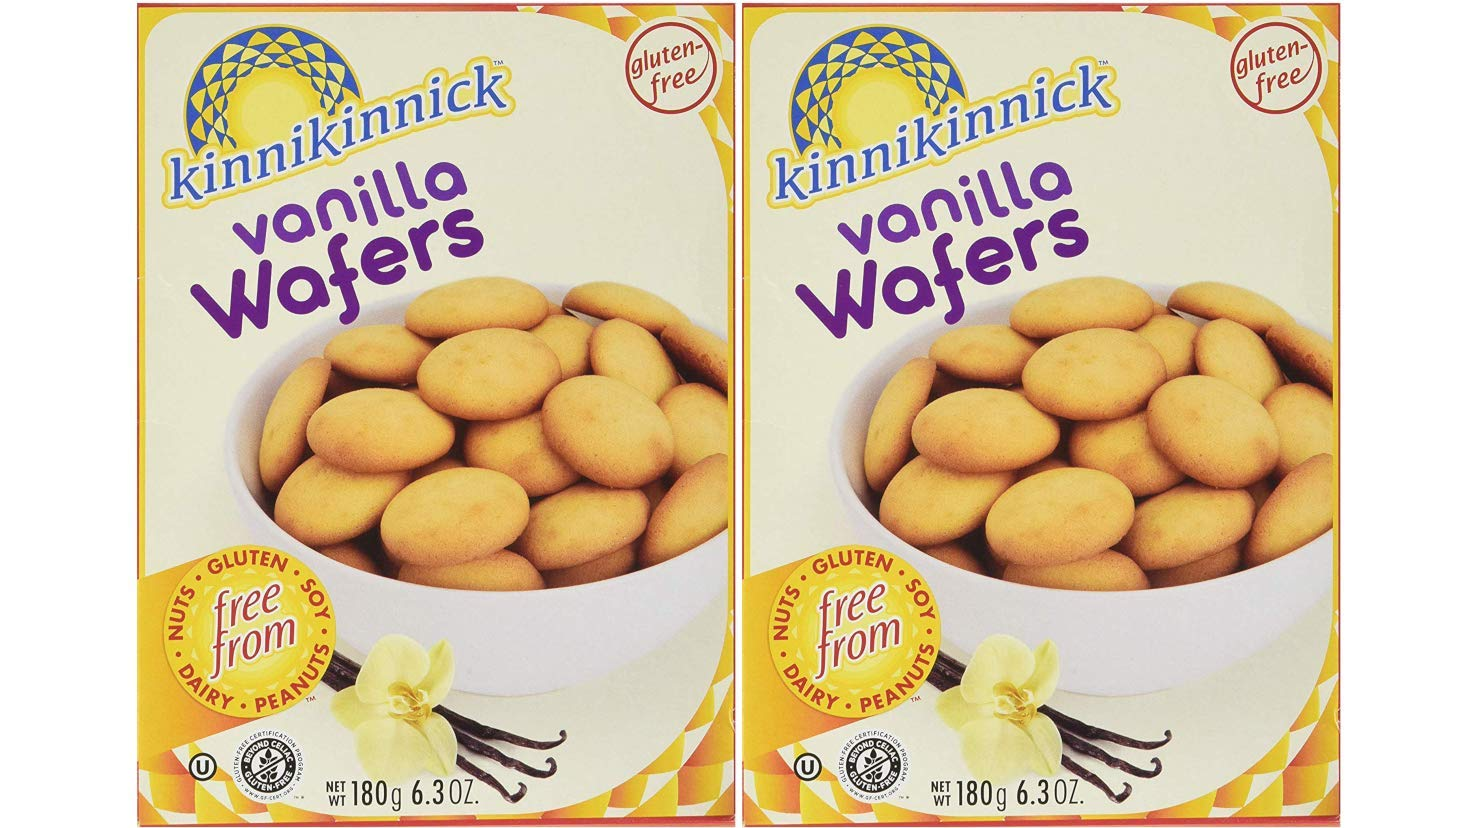 Gluten-Free Vanilla Wafer Cookies Delicious New York Mall Ounces Sales 12.7 Dairy-Fr